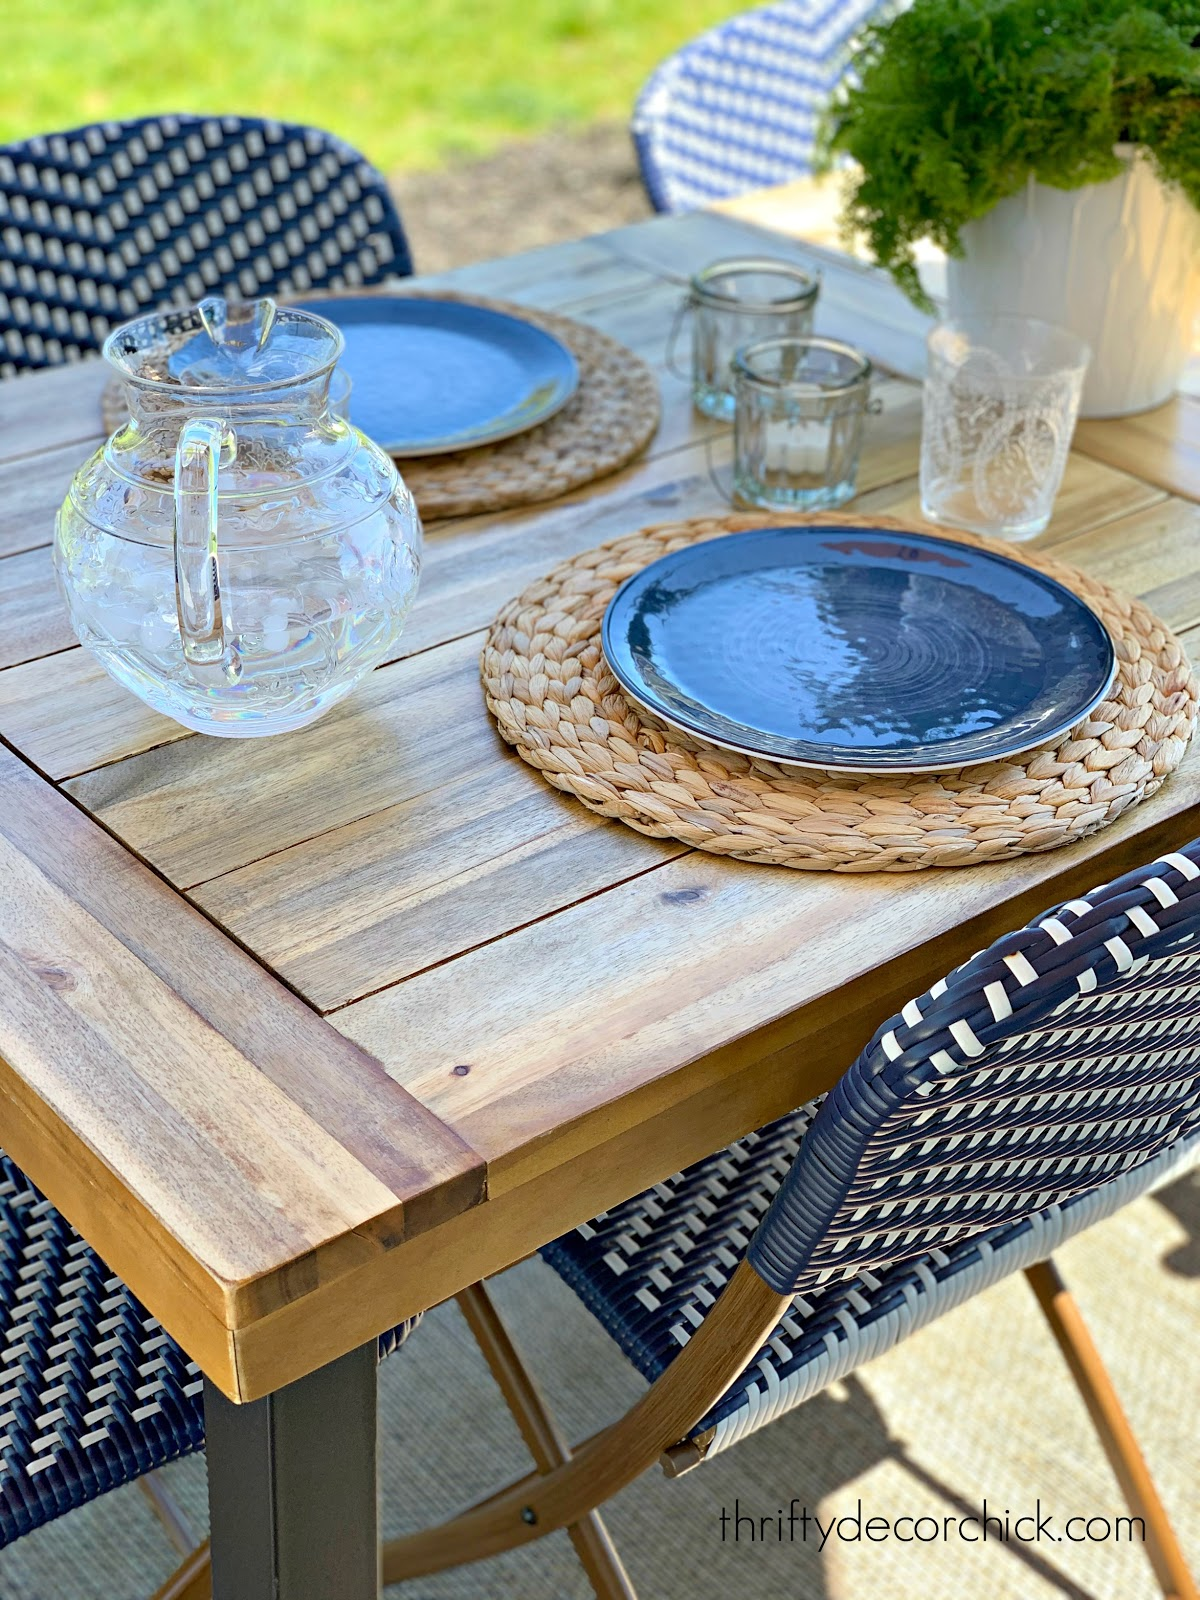 Protecting outdoor table with natural finish